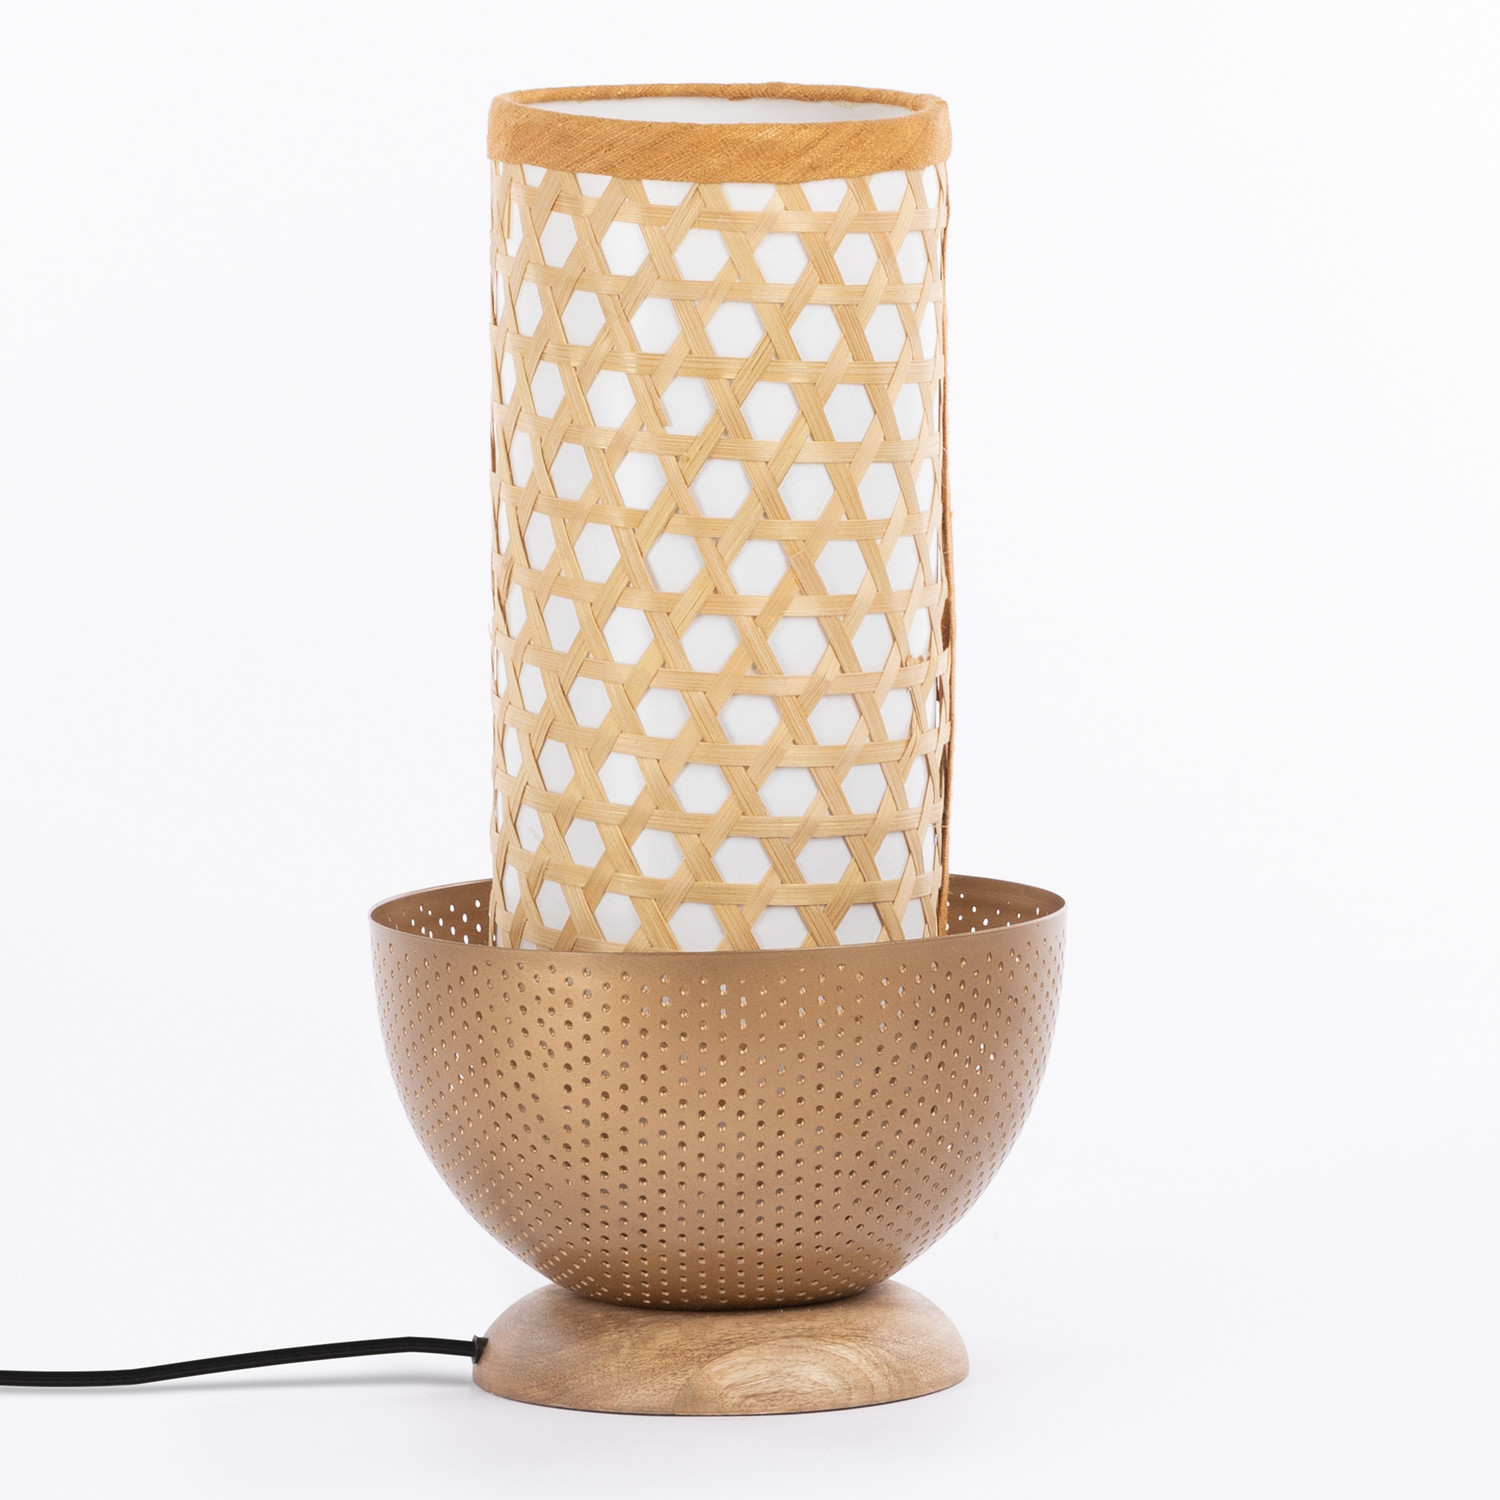 Ëlsy Lamp 02, gallery image 1